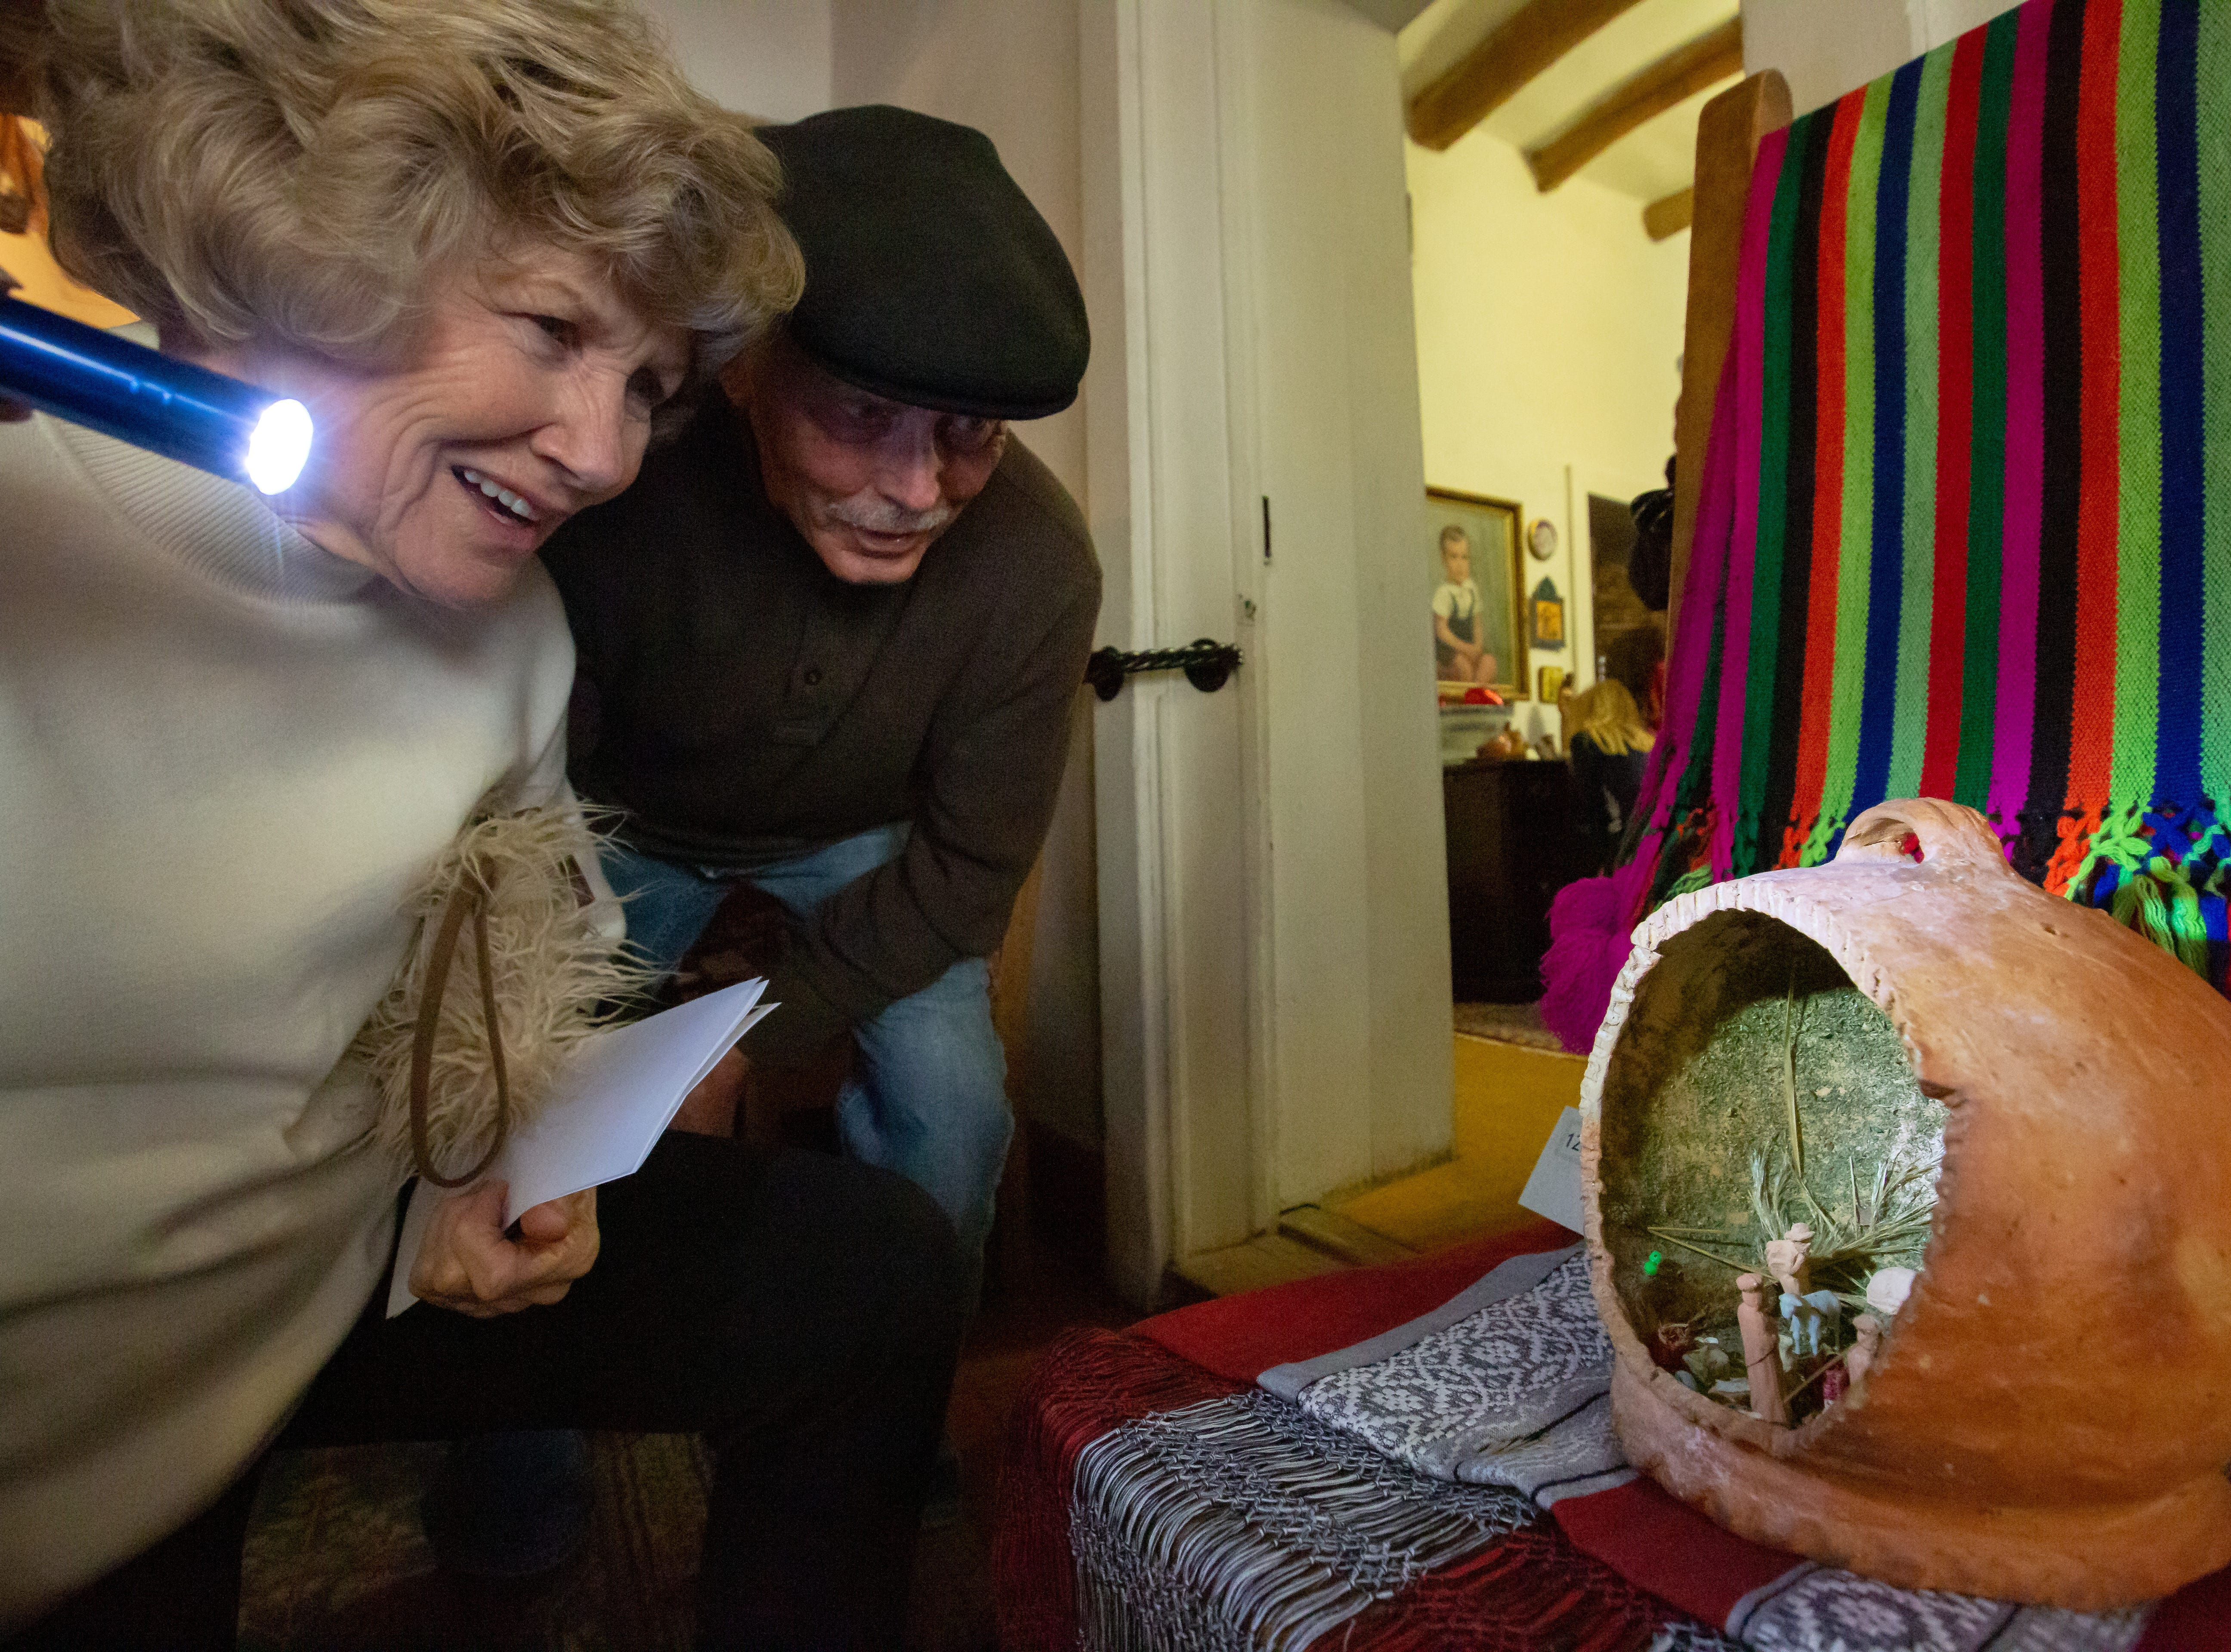 Pat Green, left, and Ernst Volleter look at nativity scenes on Sunday, December 16, 2018, during Nacimiento Open House with J. Paul Taylor at the Taylor-Barela-Reynolds-Mesilla Historic Site located in the Mesilla Plaza.